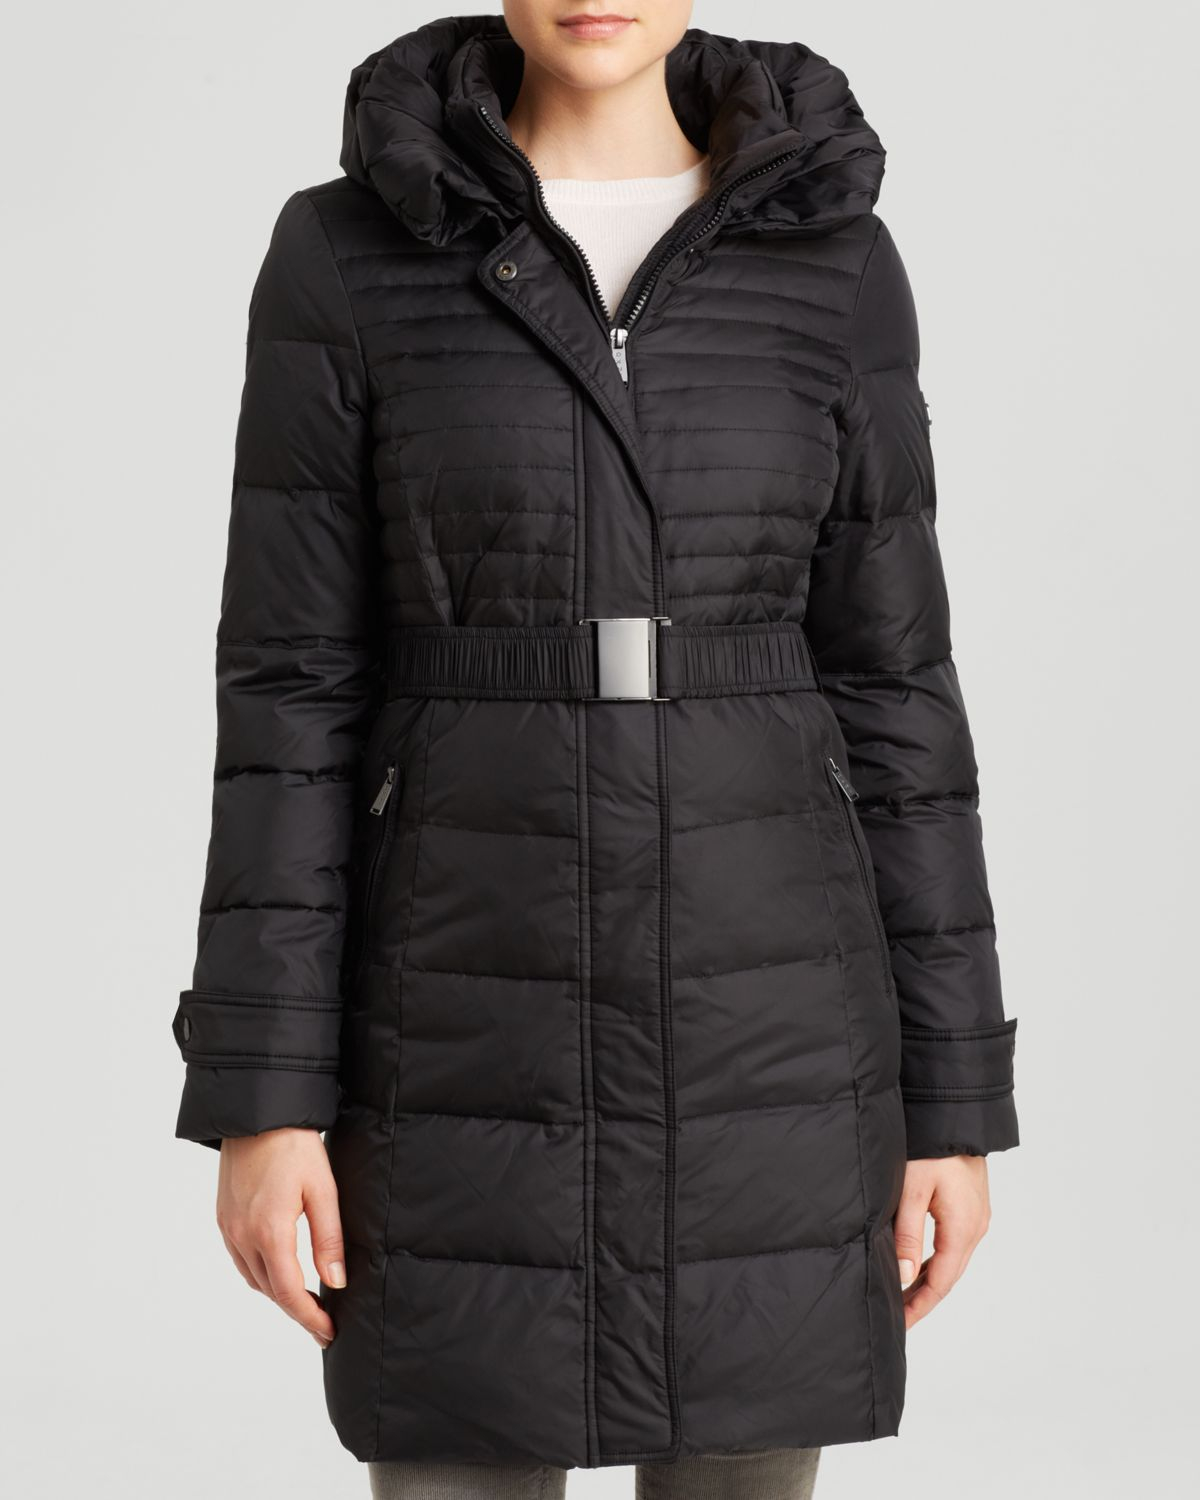 Dkny Coat Macie Belted Double Collar In Black Save 20